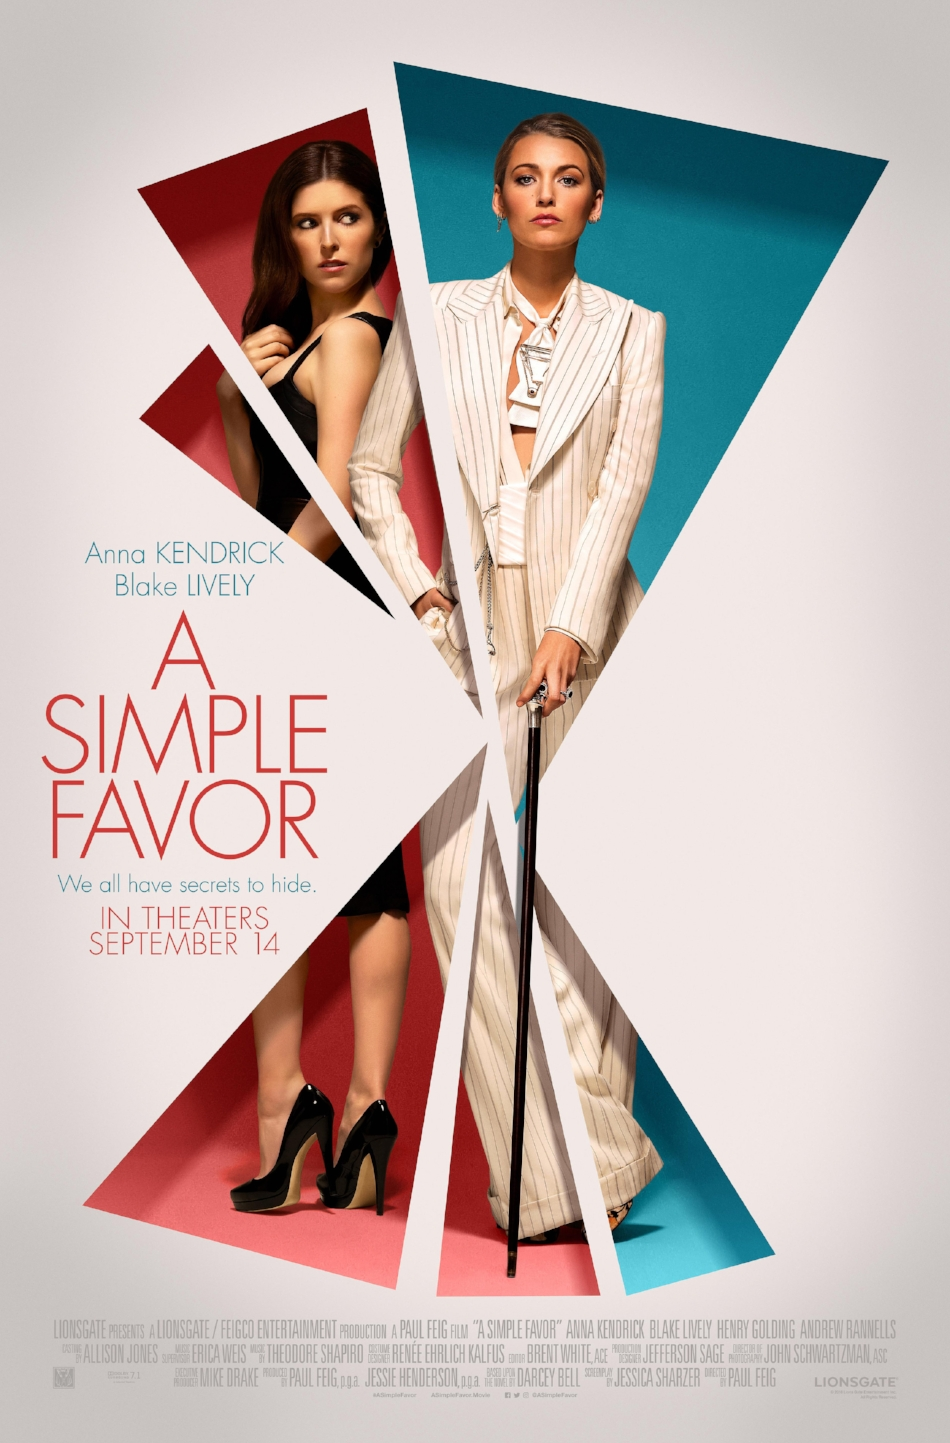 A SIMPLE FAVOR - Poster Art (Final).jpg